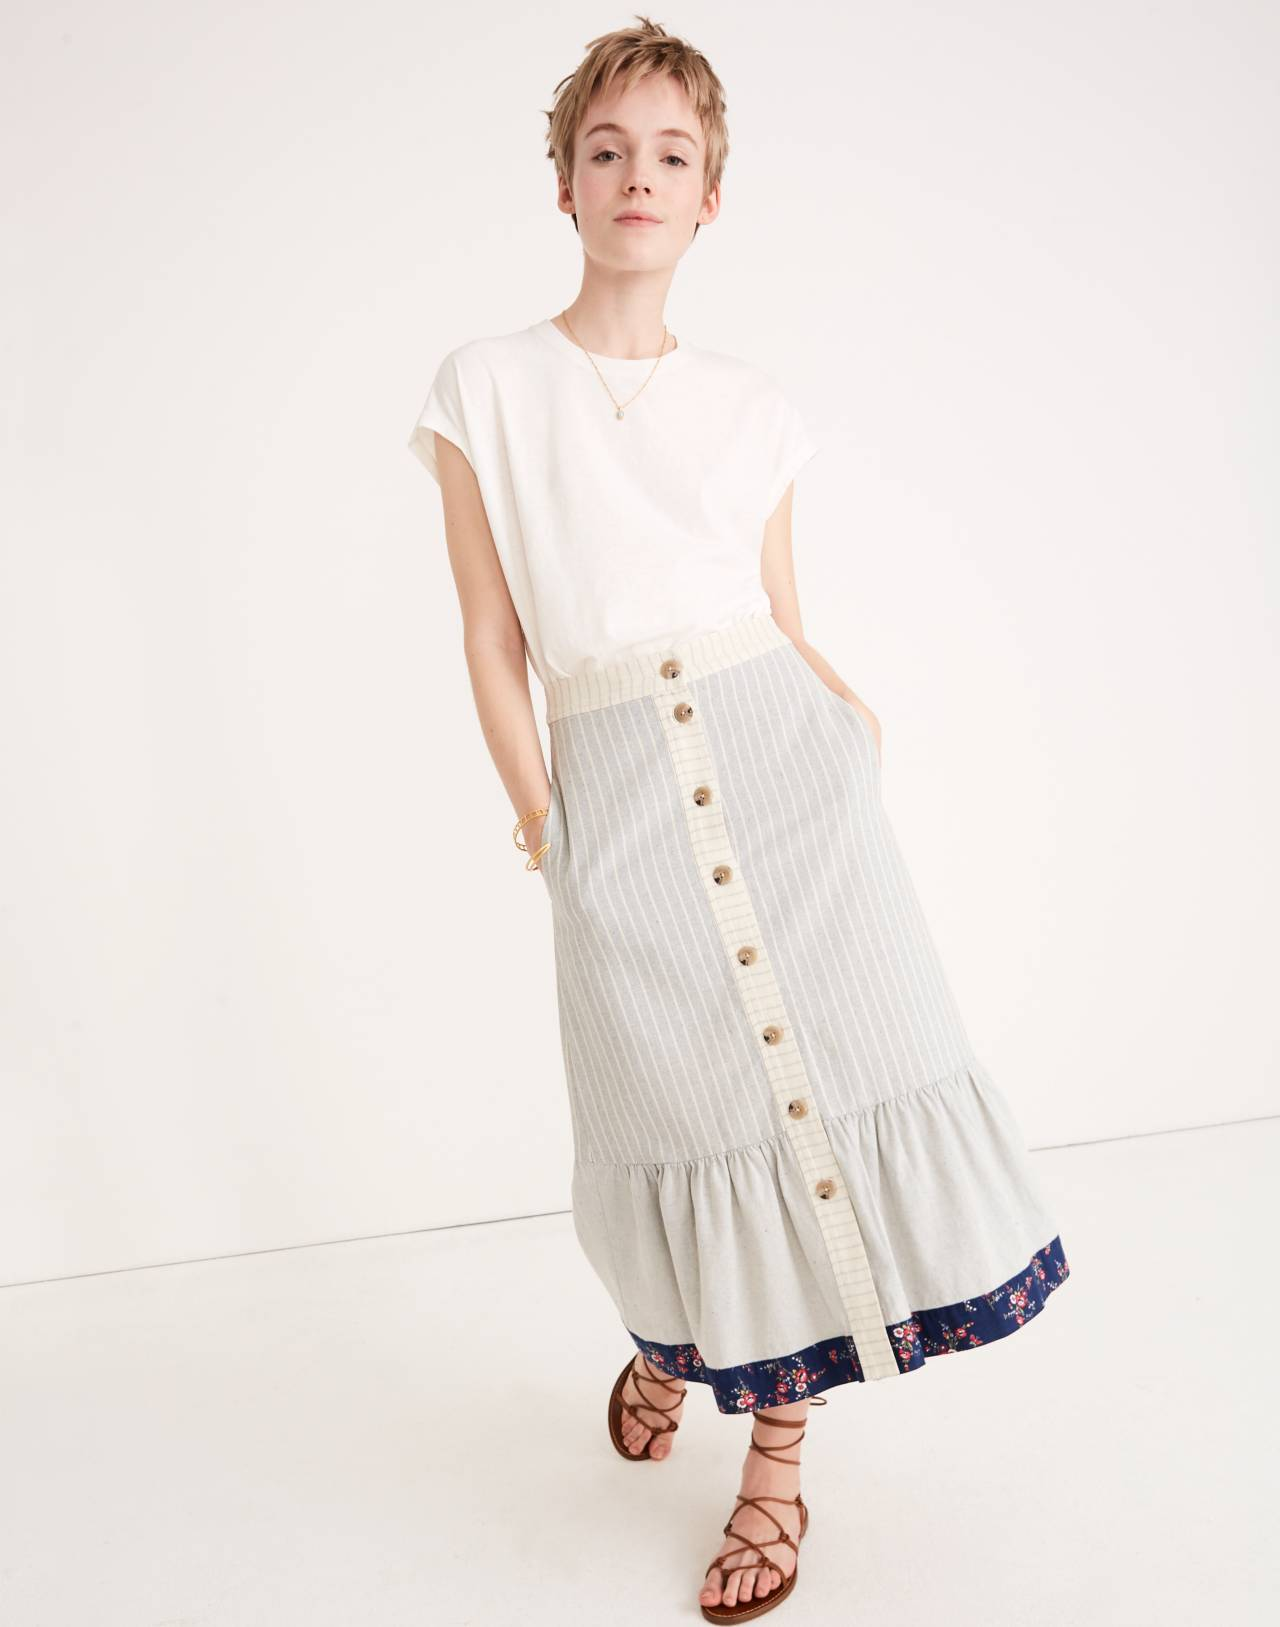 Madewell x The New Denim Project Patchwork Skirt in white skinny stripe image 1